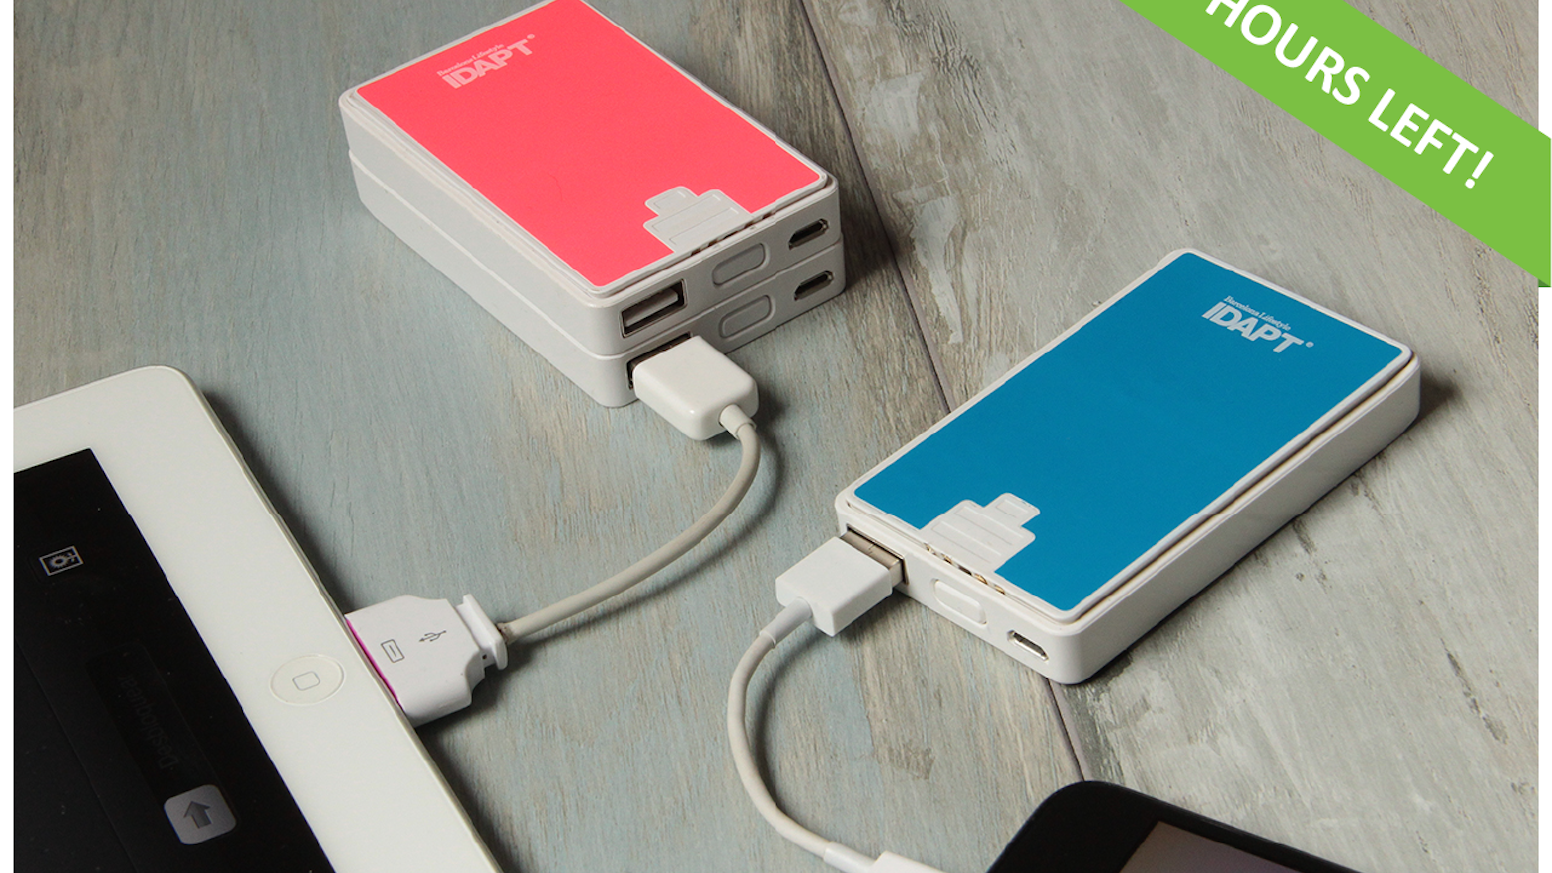 Modulo - Expandable portable battery. Awarded Best Product by ... on